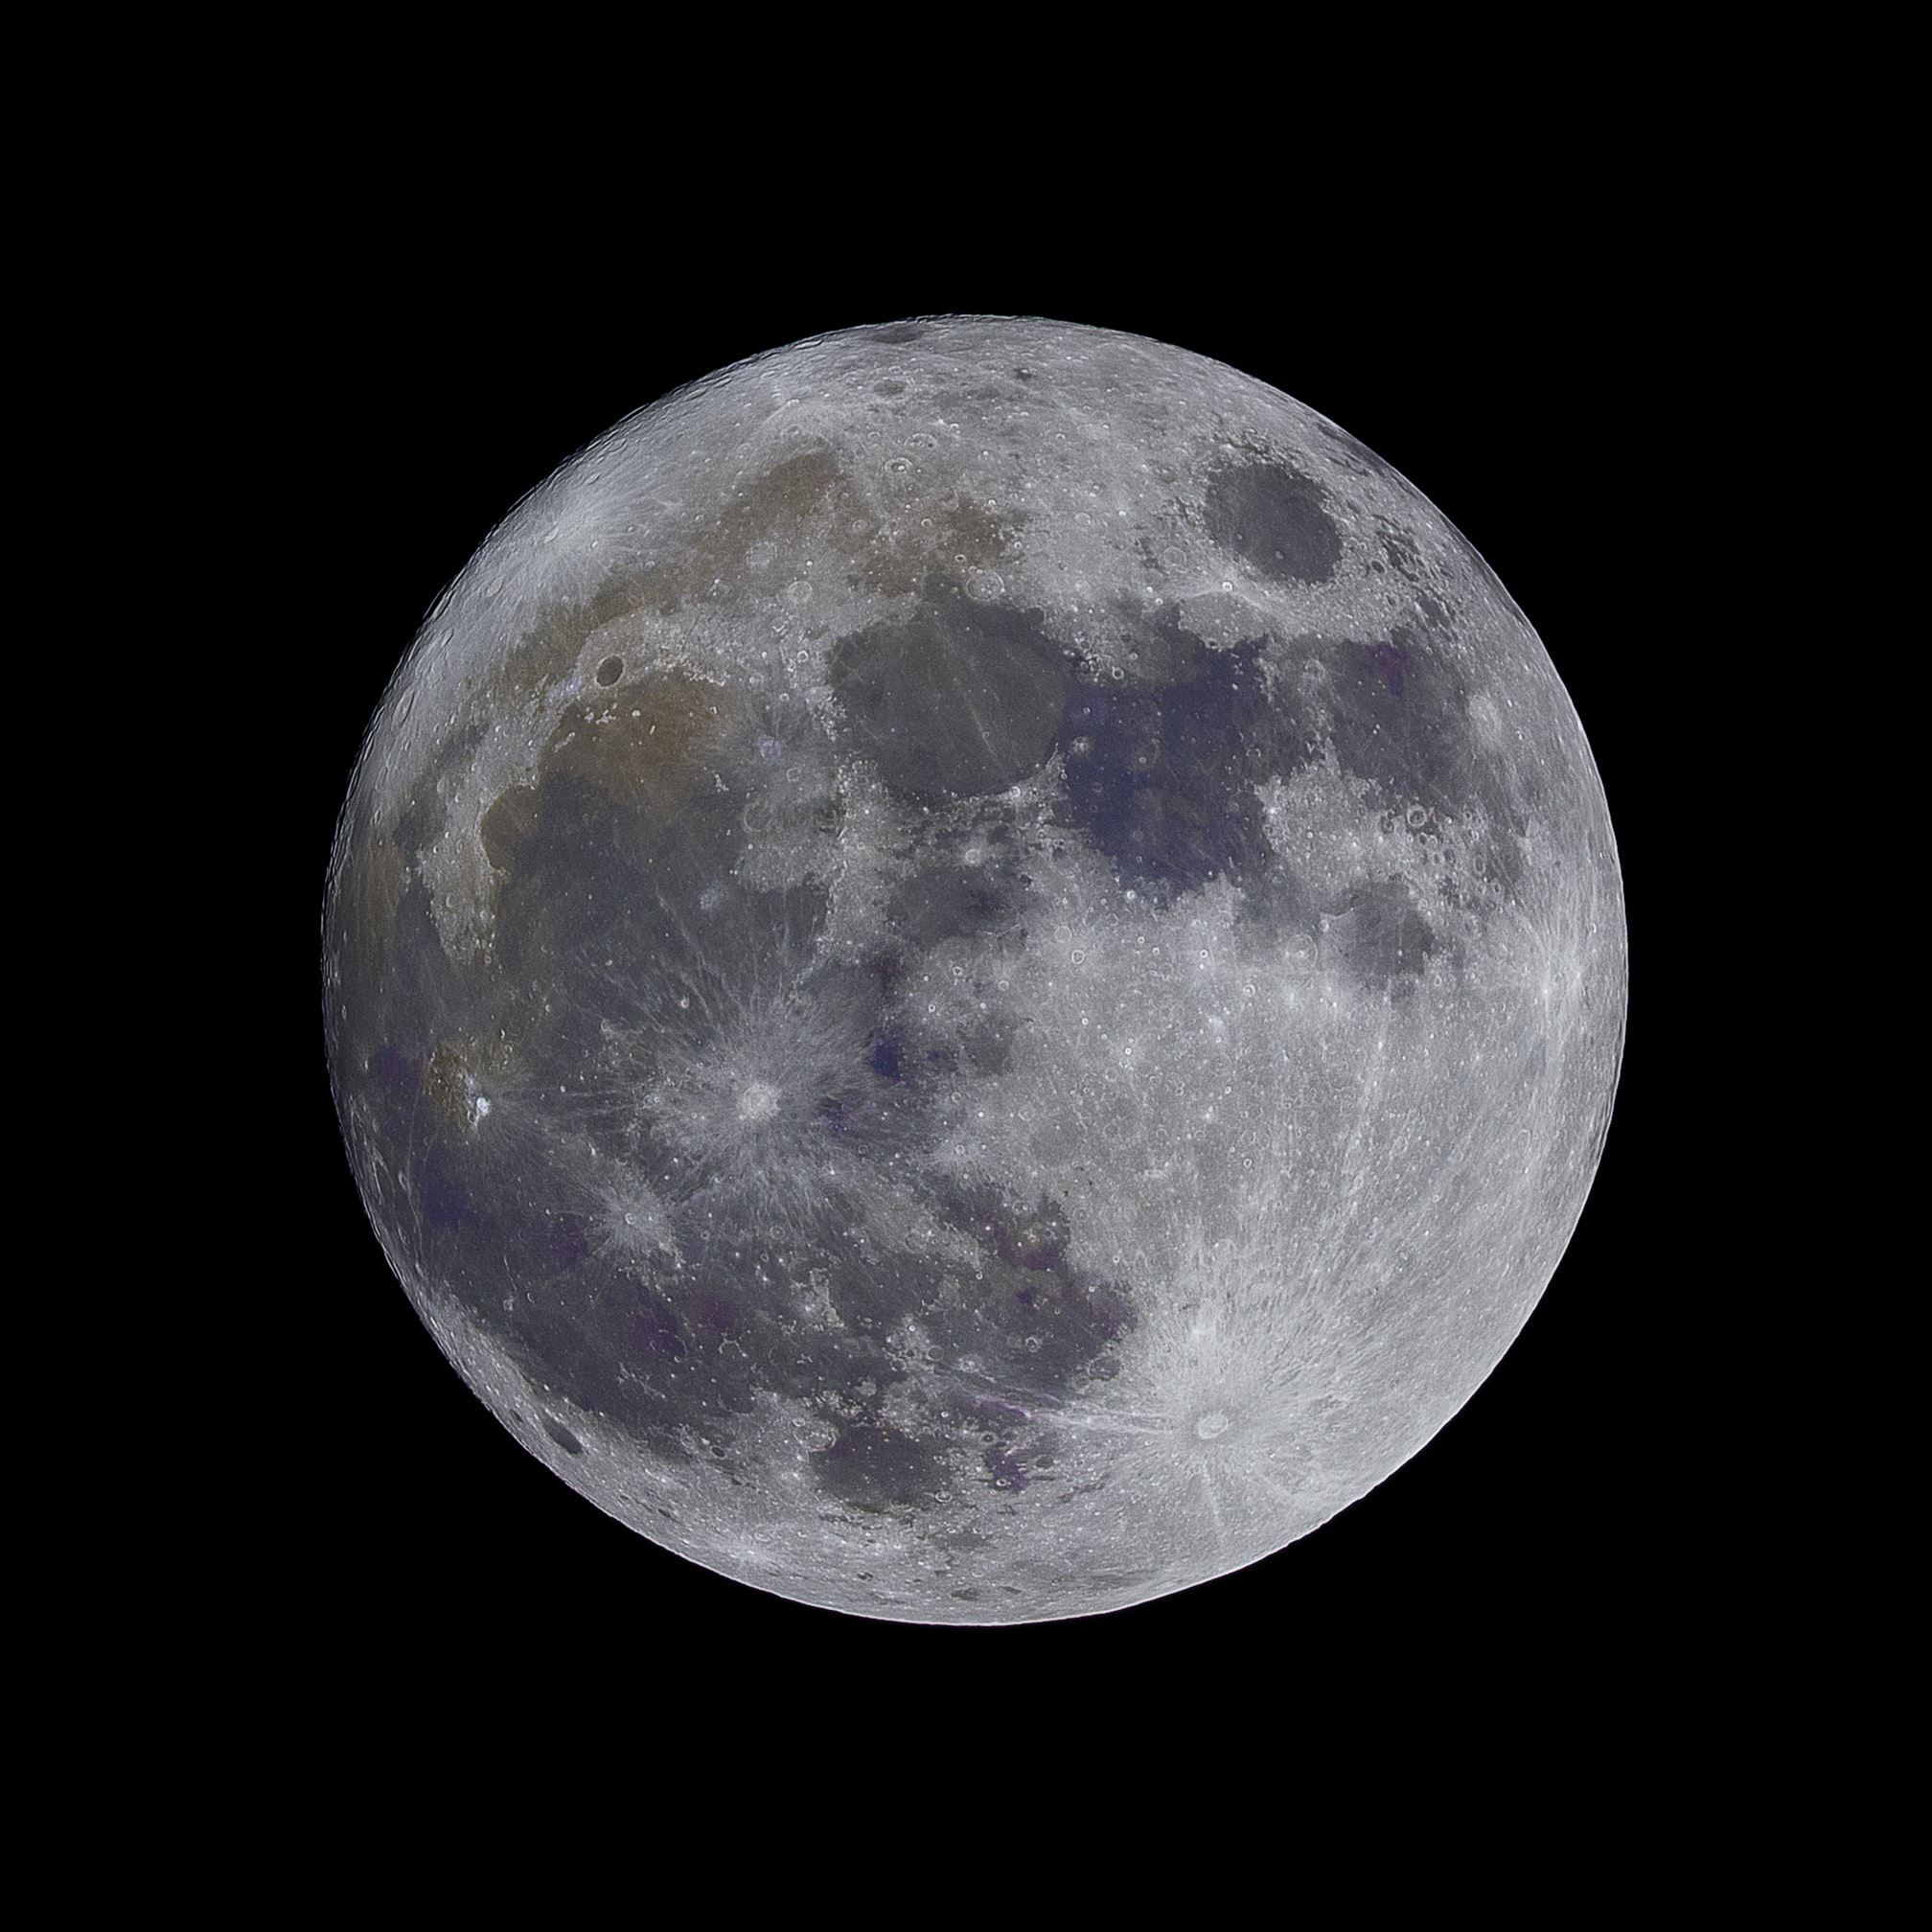 Lunar craters visible on the moon on the night sky at Popovec